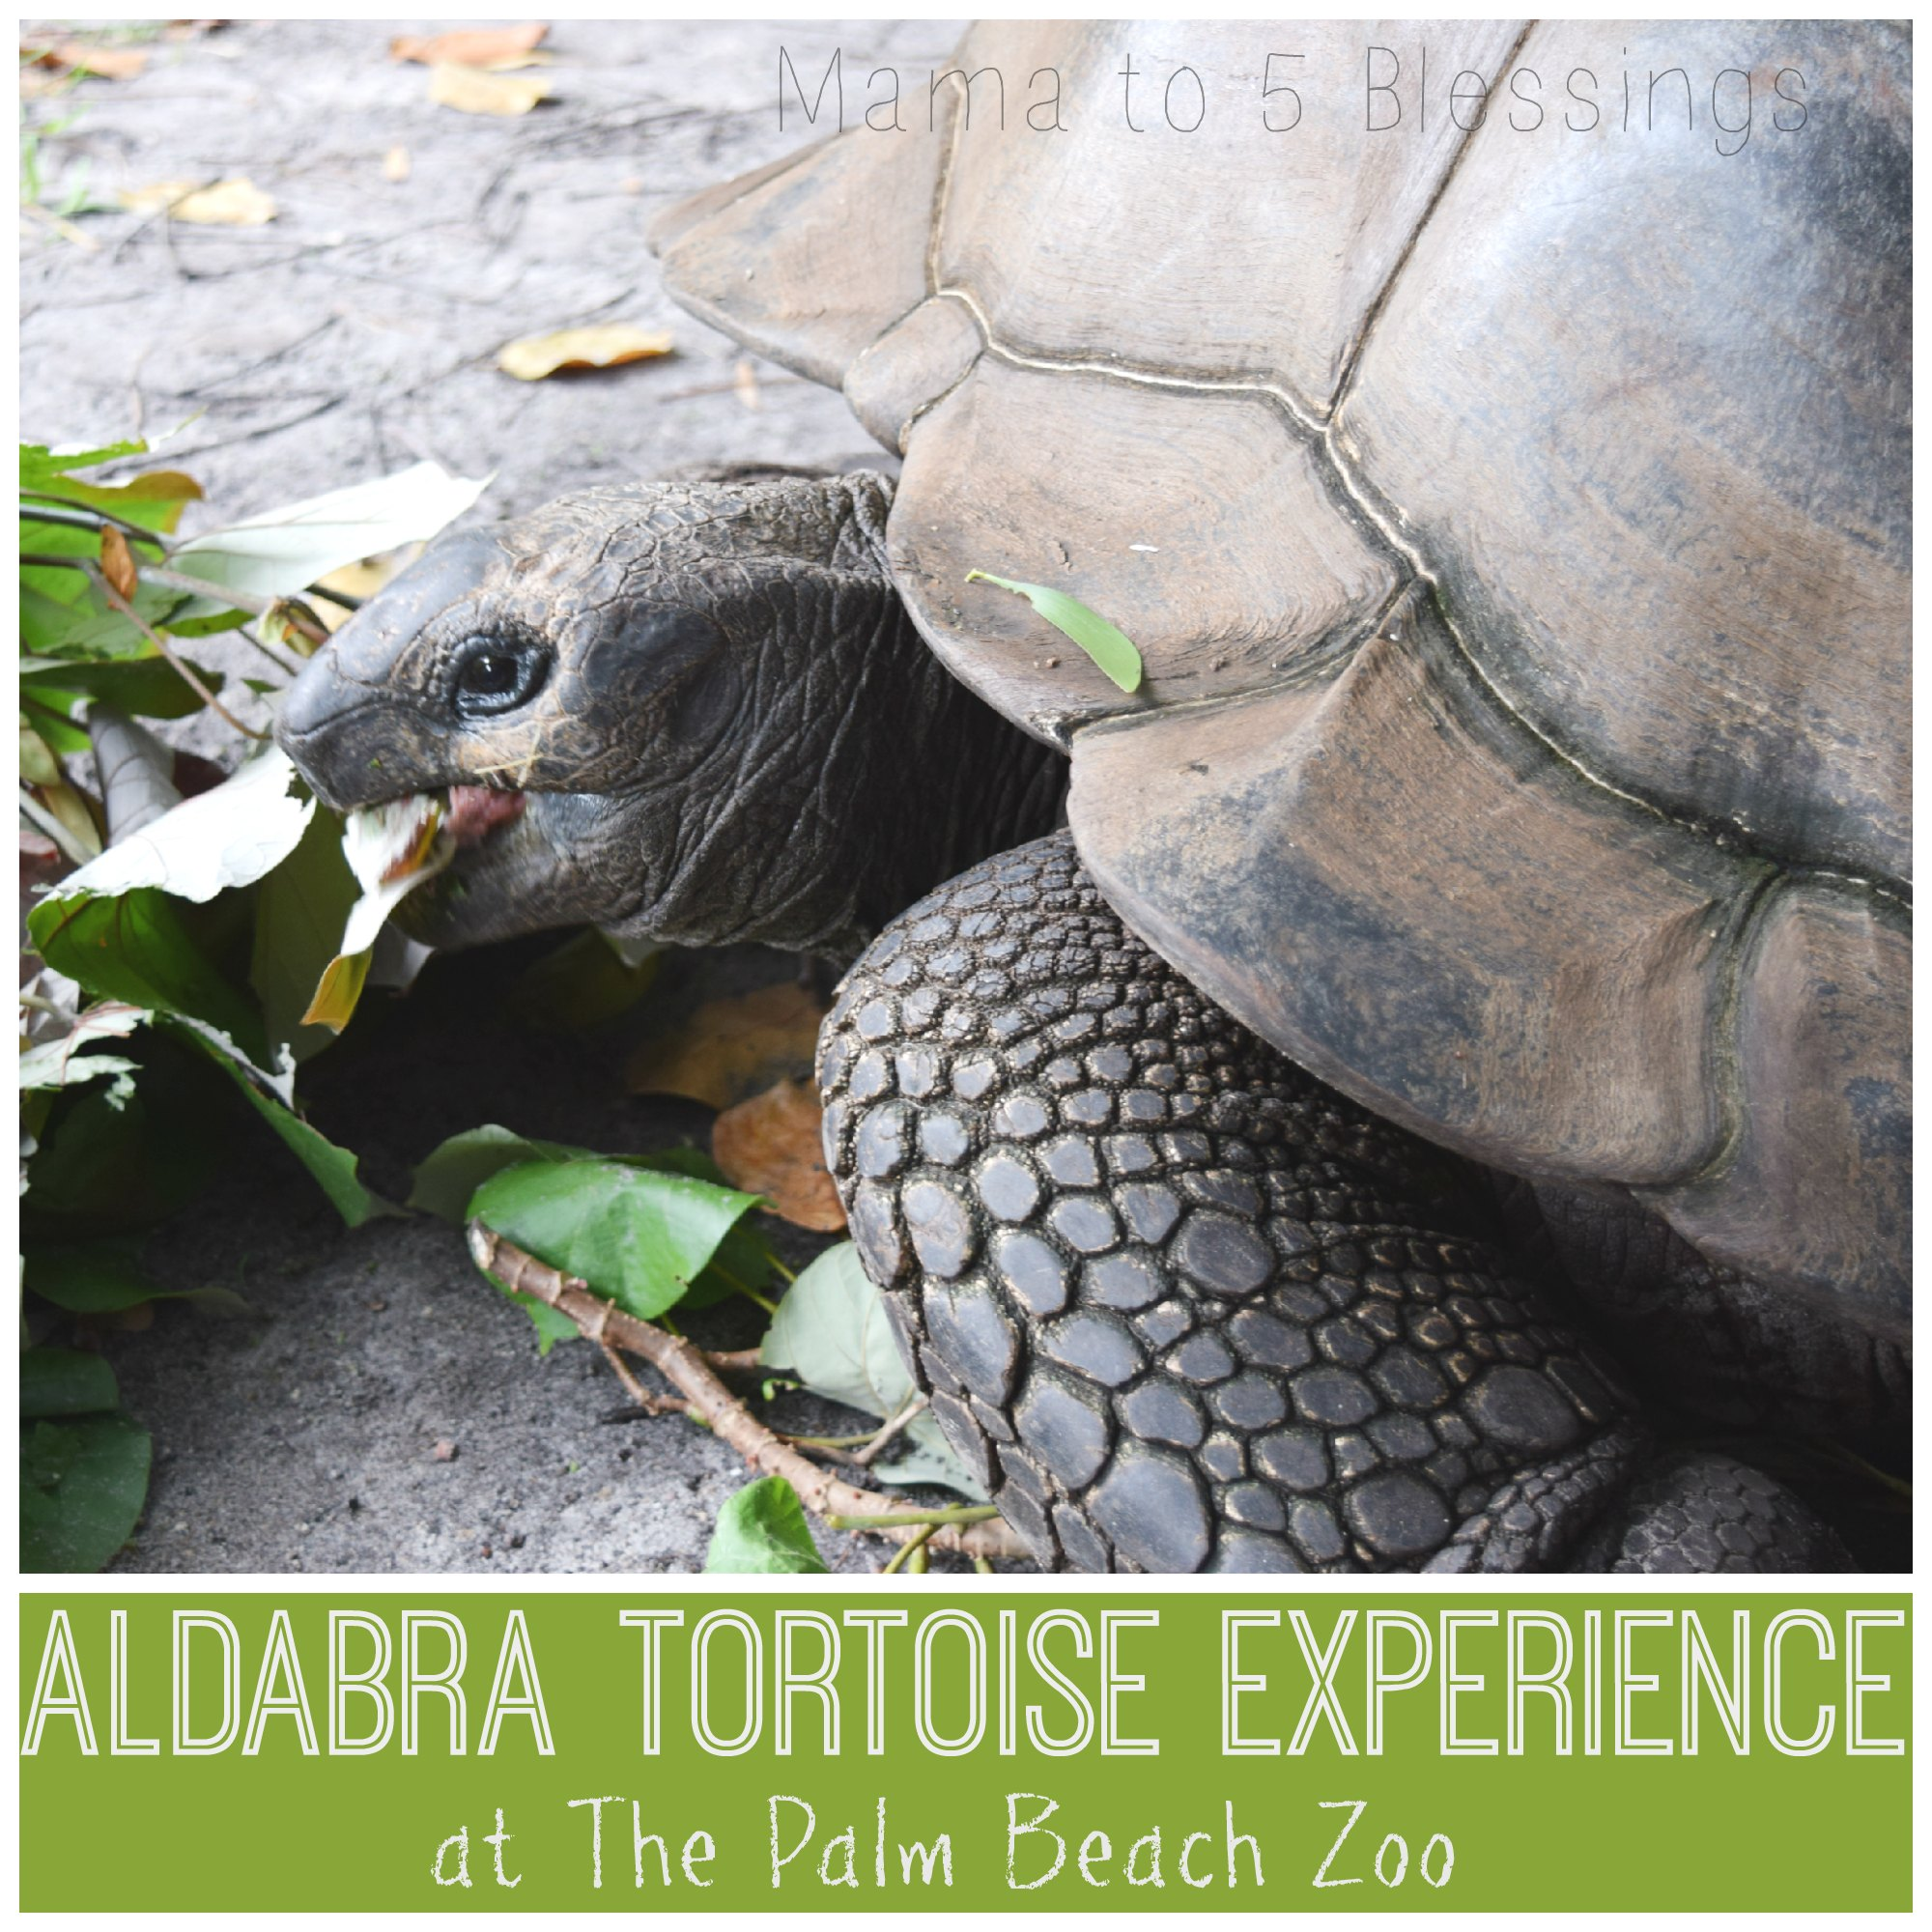 palm beach zoo aldabra button